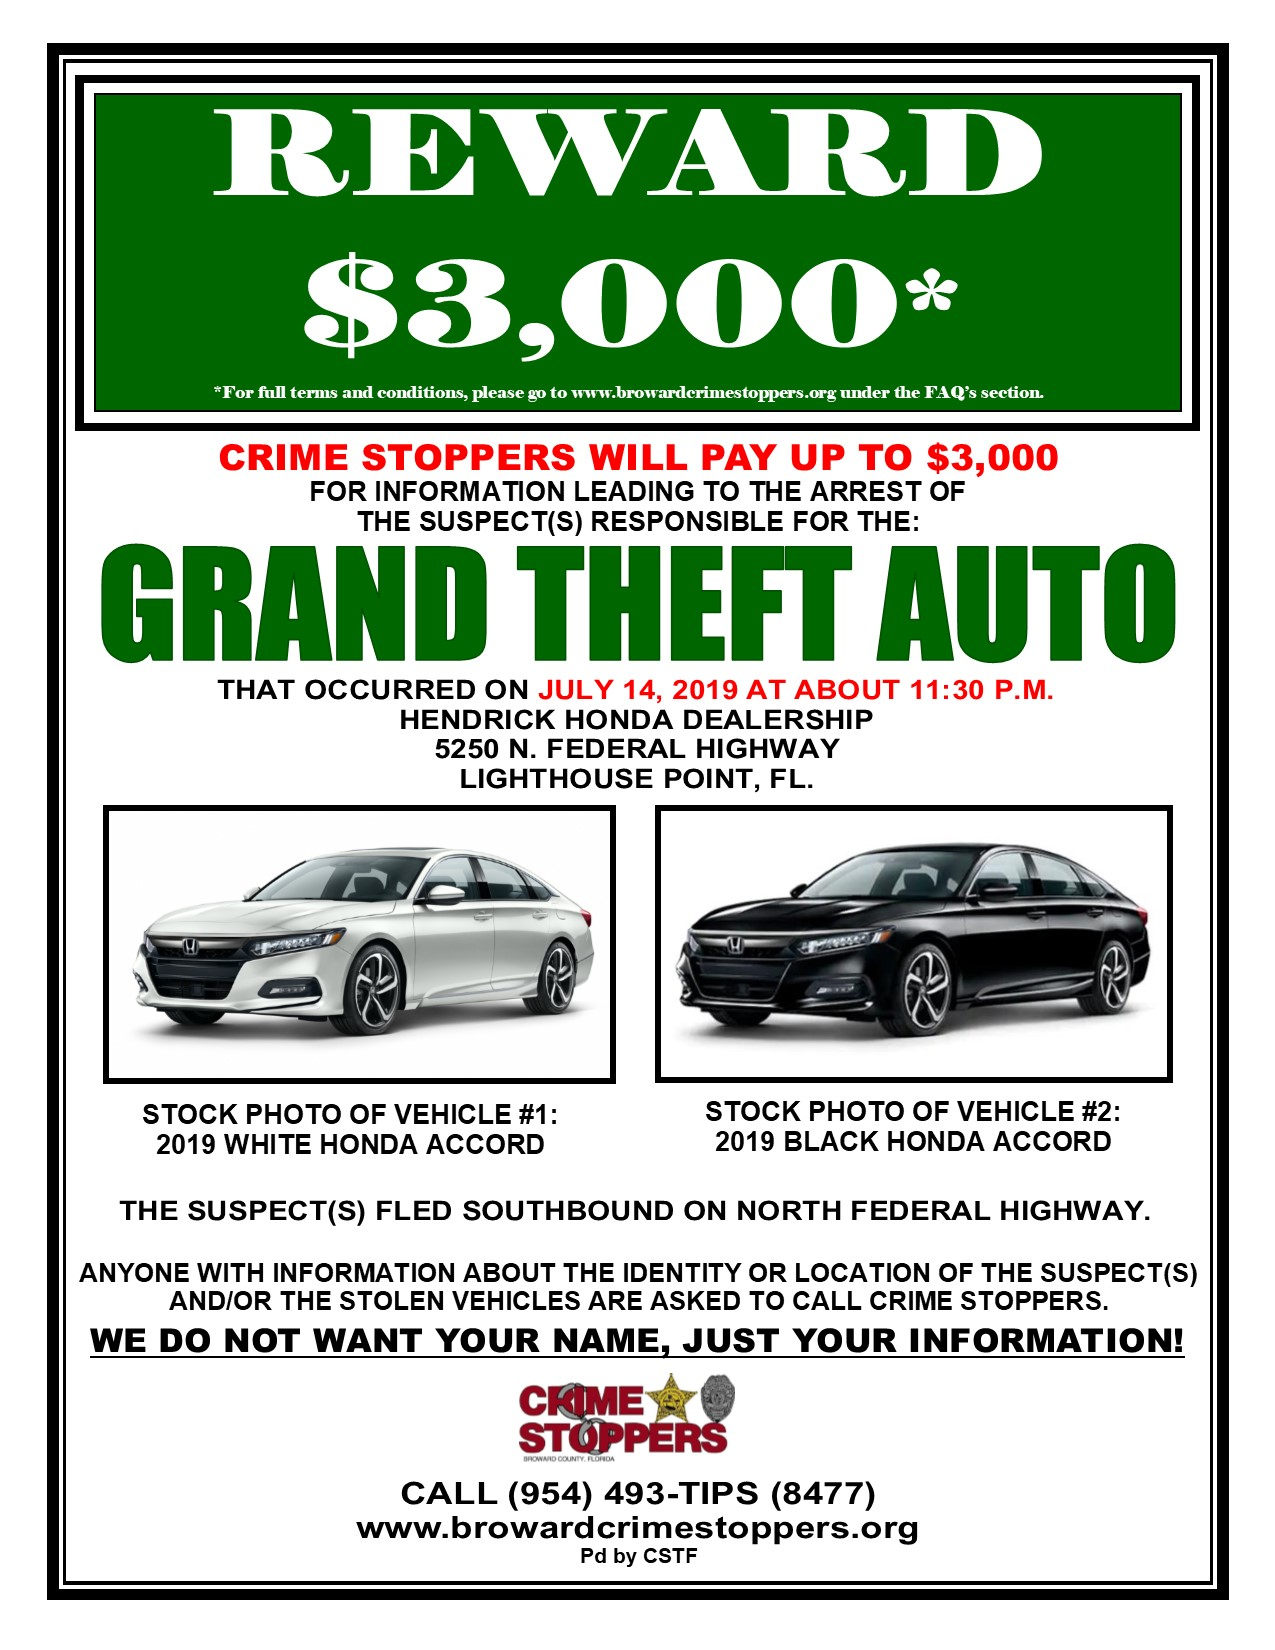 Unsolved Crimes | Broward Crime Stoppers